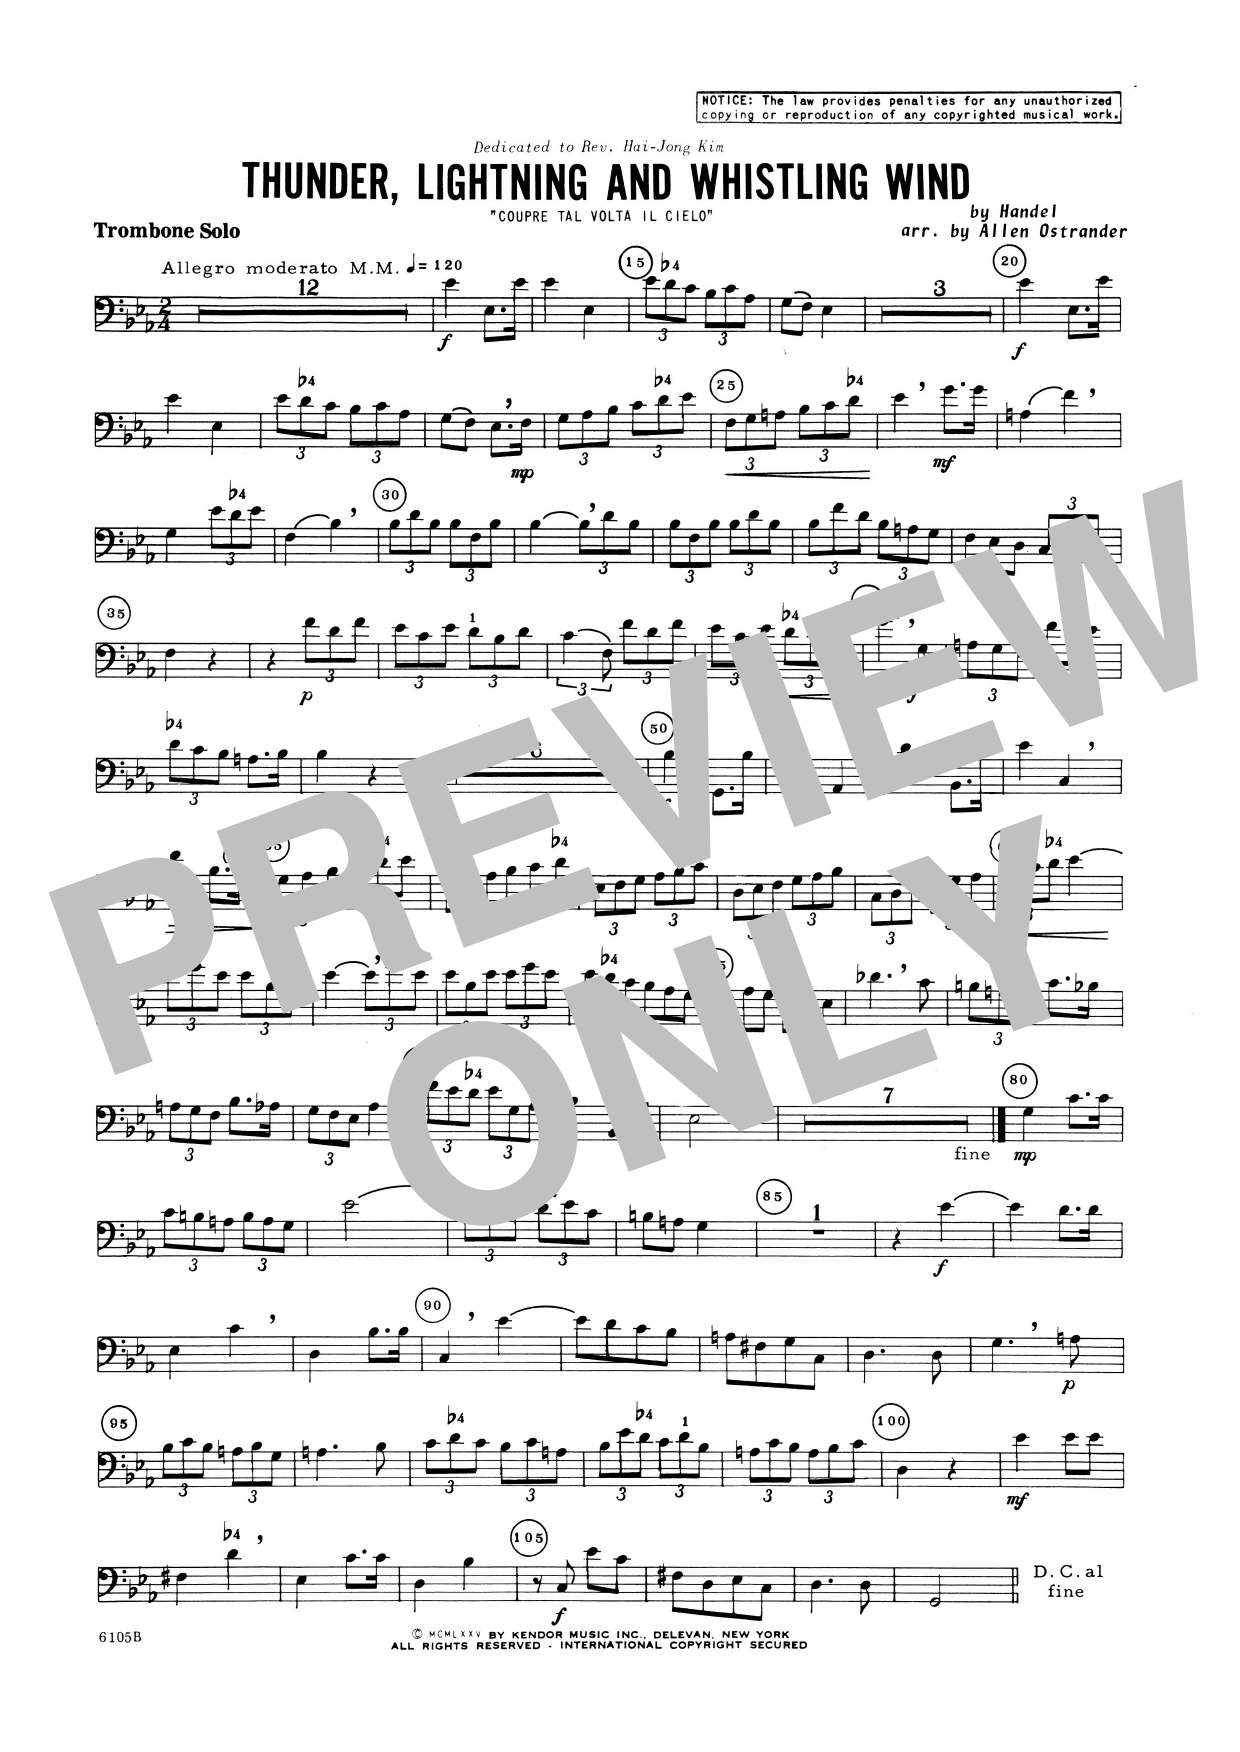 Thunder, Lightning And Whistling Wind (Coupre Tal Volta Il Cielo) (complete set of parts) sheet music for trombone and piano by George Frideric Handel. Score Image Preview.